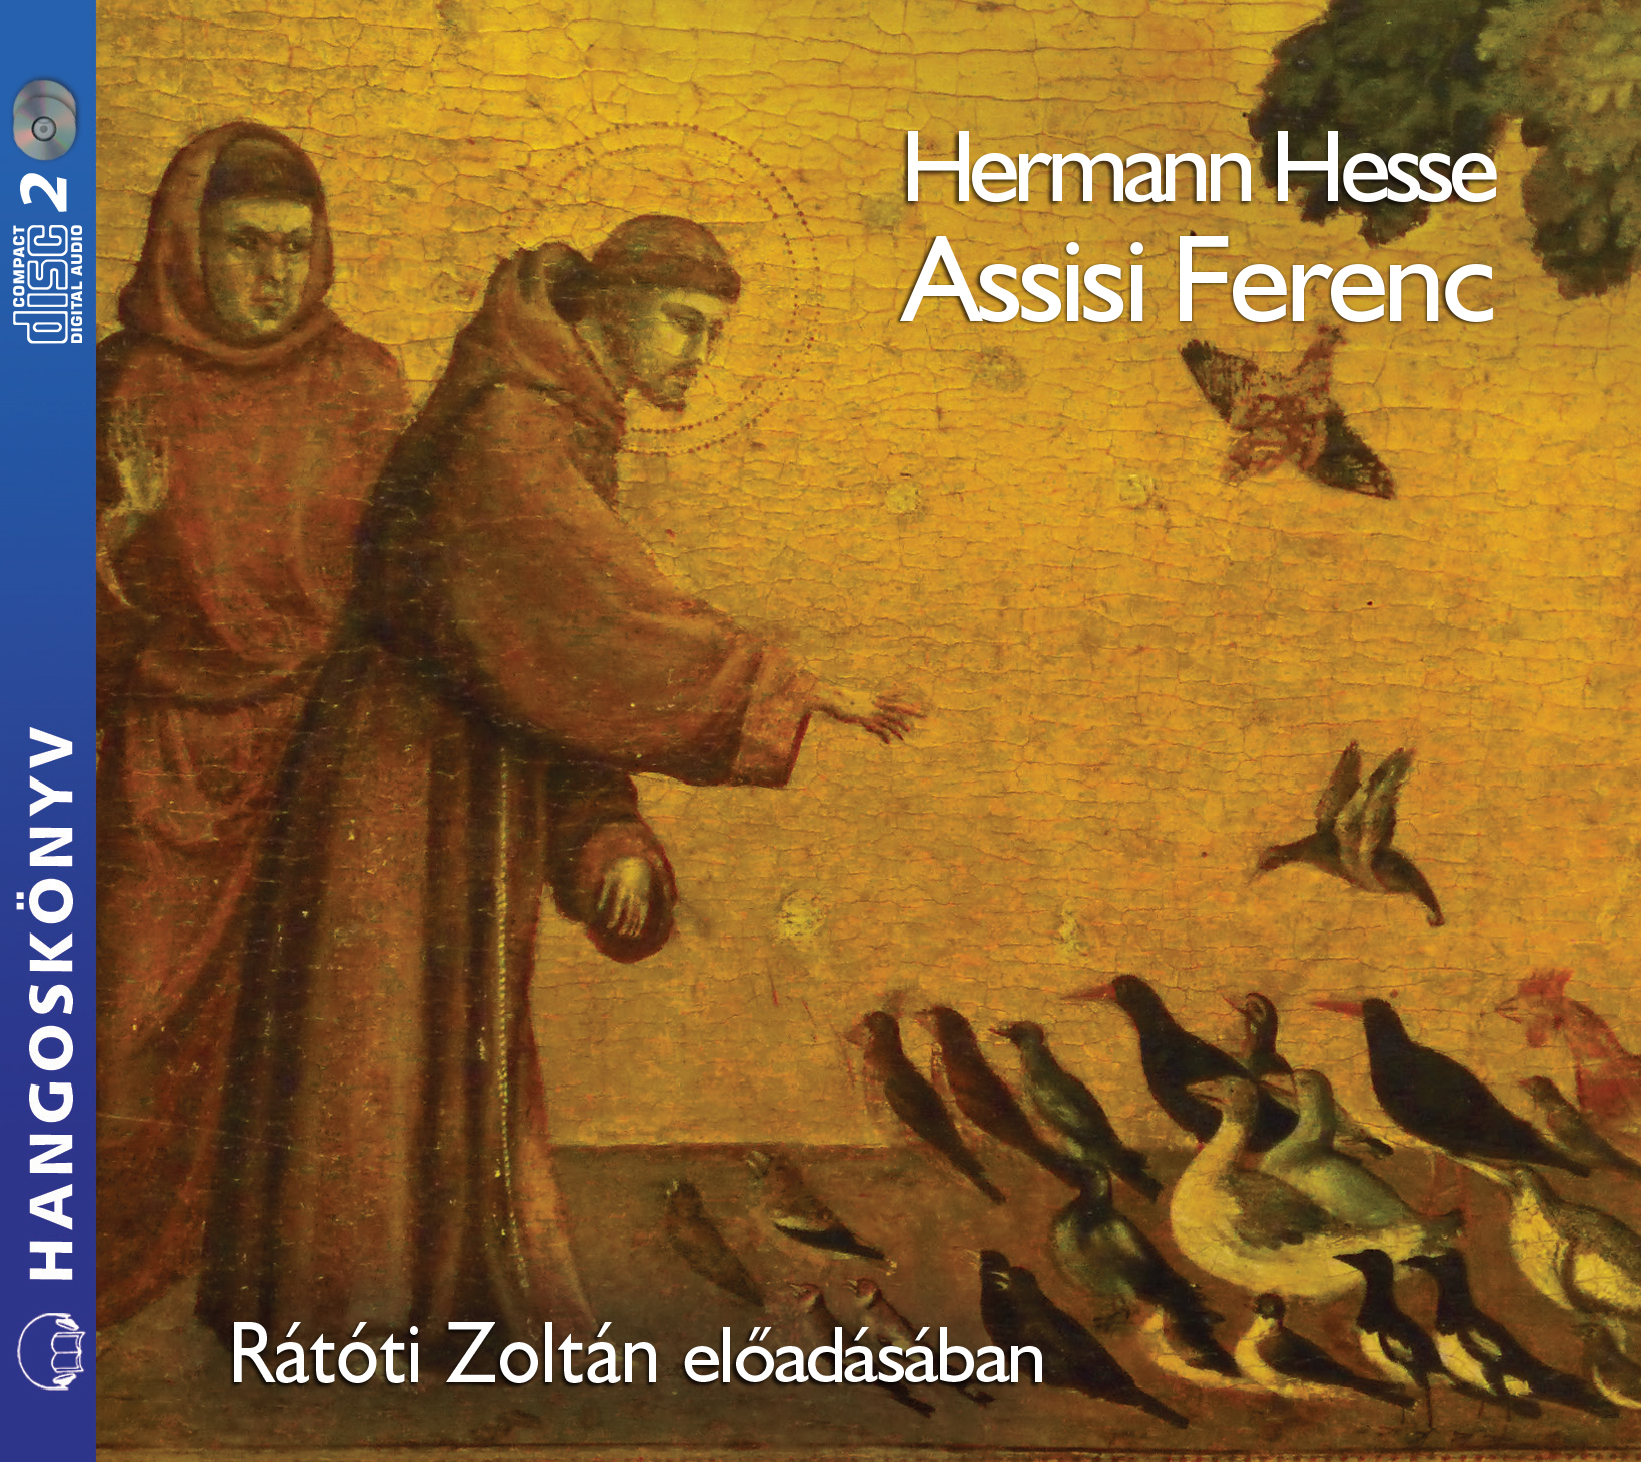 Hermann Hesse: Assisi Ferenc